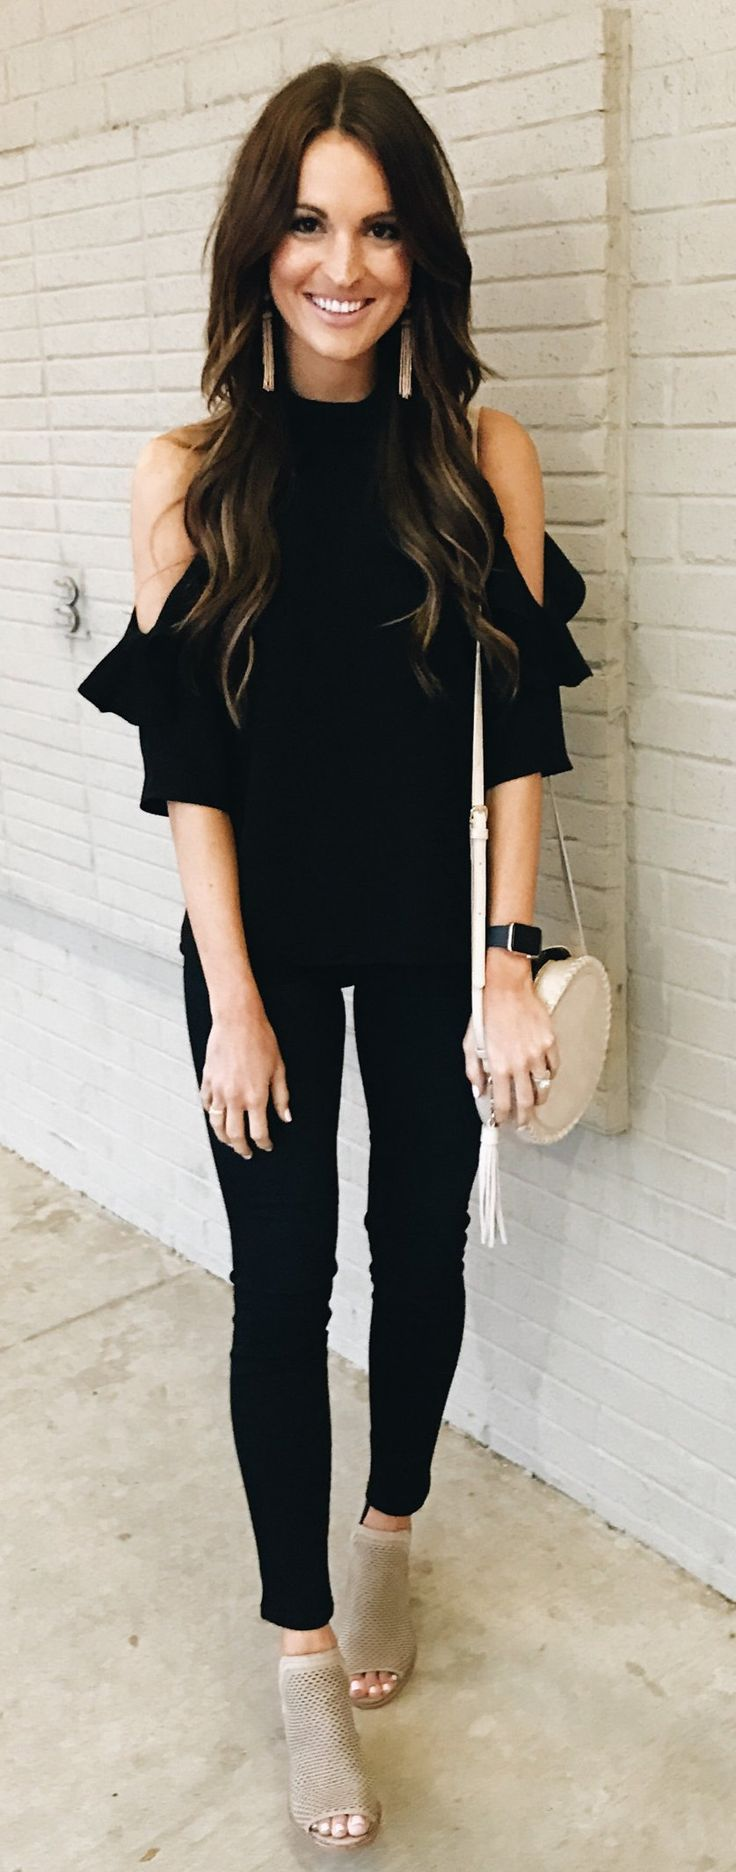 Best 25+ Black pants outfit ideas on Pinterest